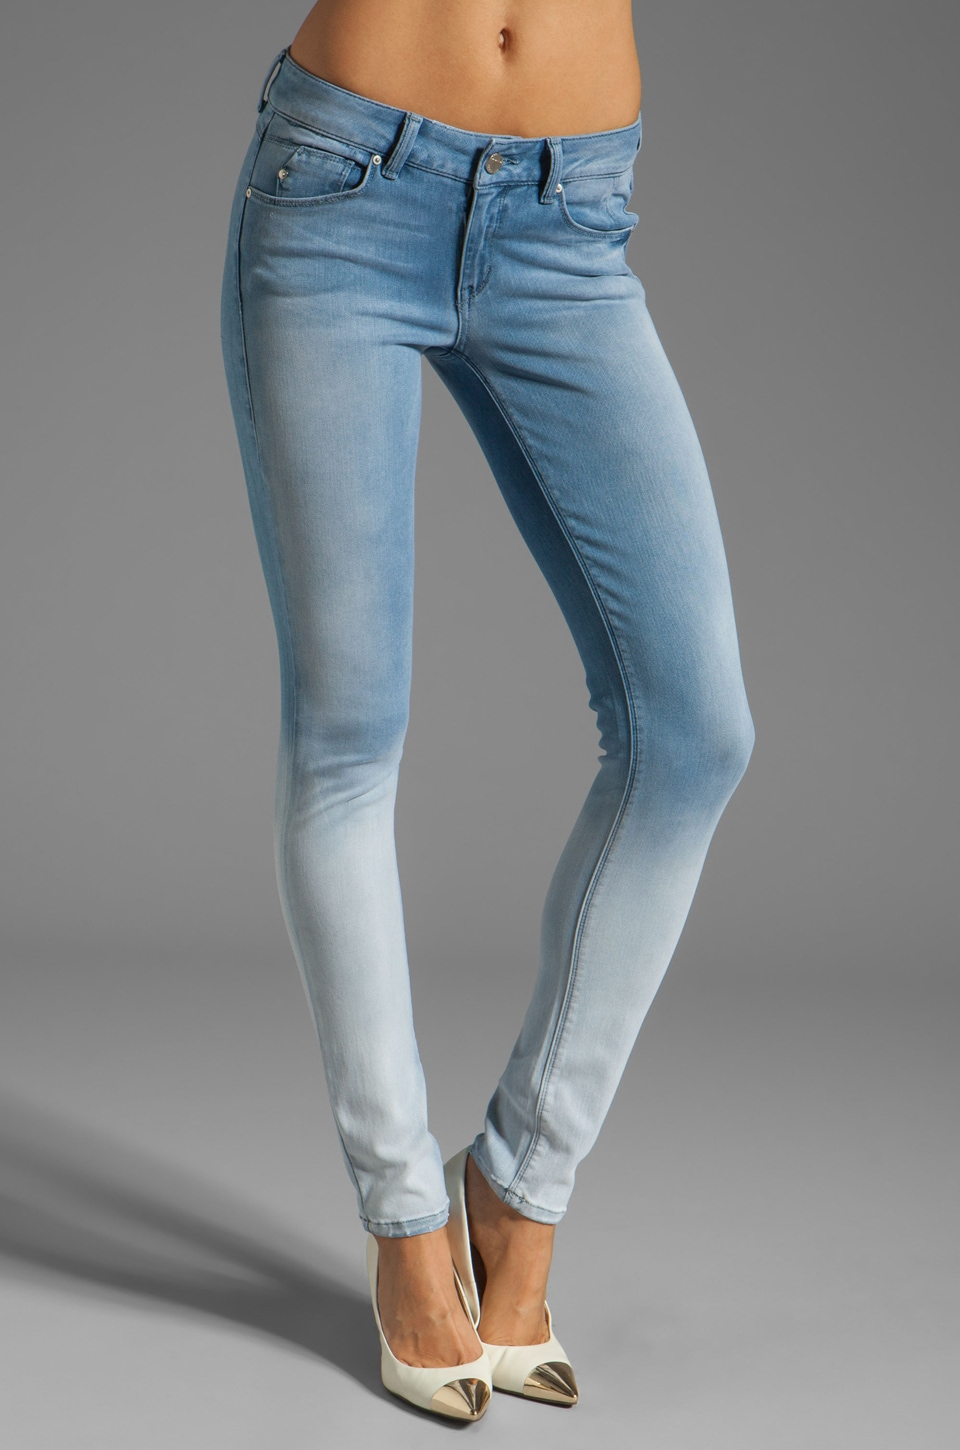 SOLD Design Lab SOLD Soho Ombre Super Skinny in Denim Wash